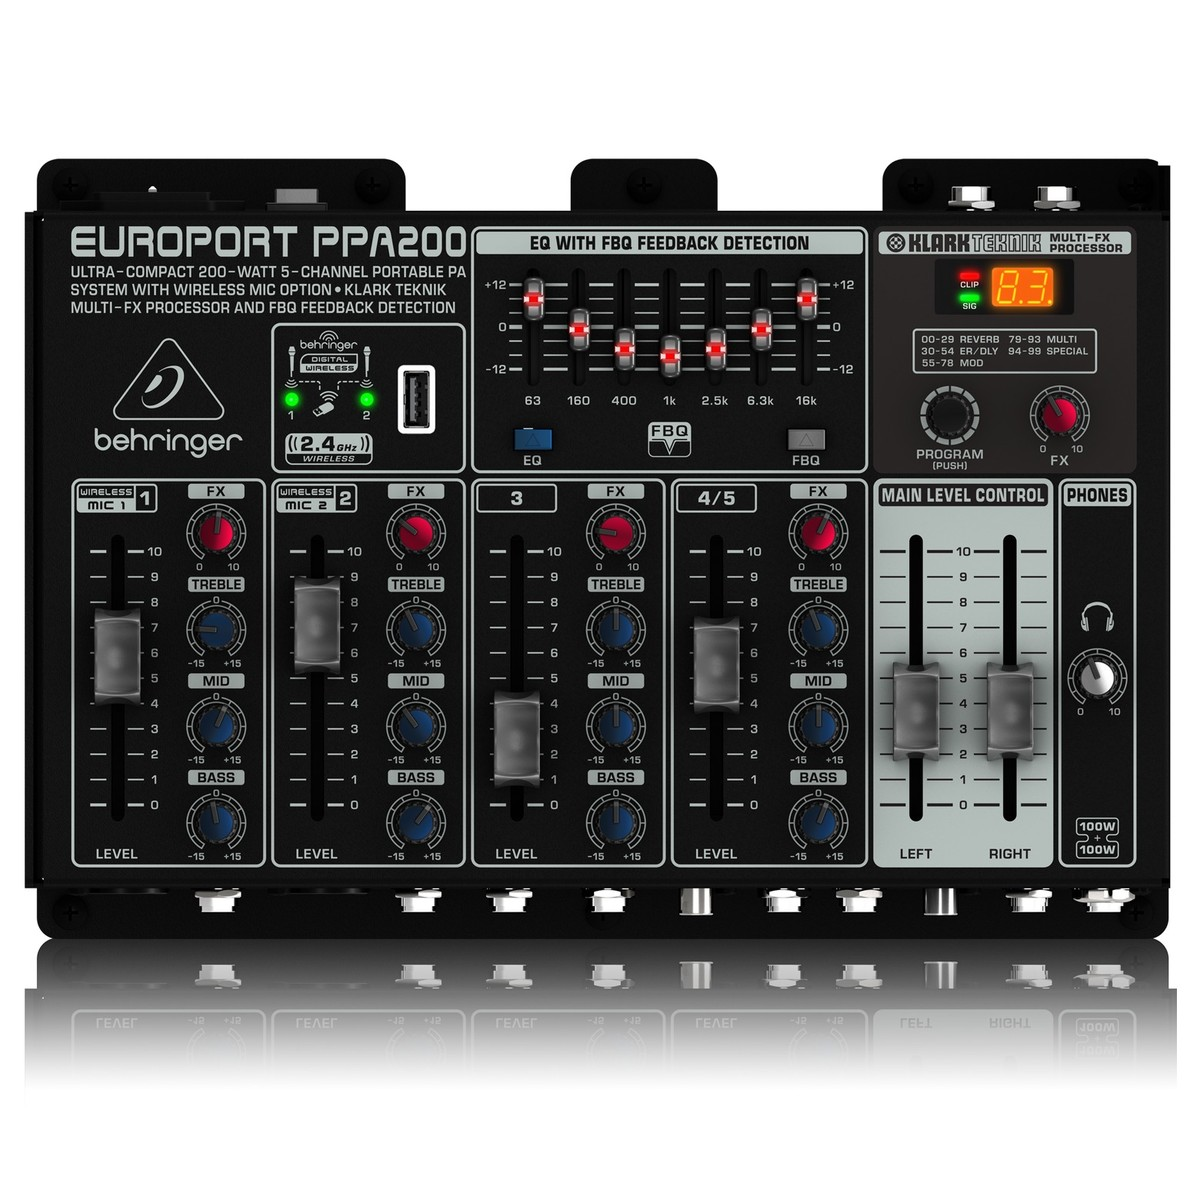 Behringer Europort Ppa200 5 Channel Portable Pa System At